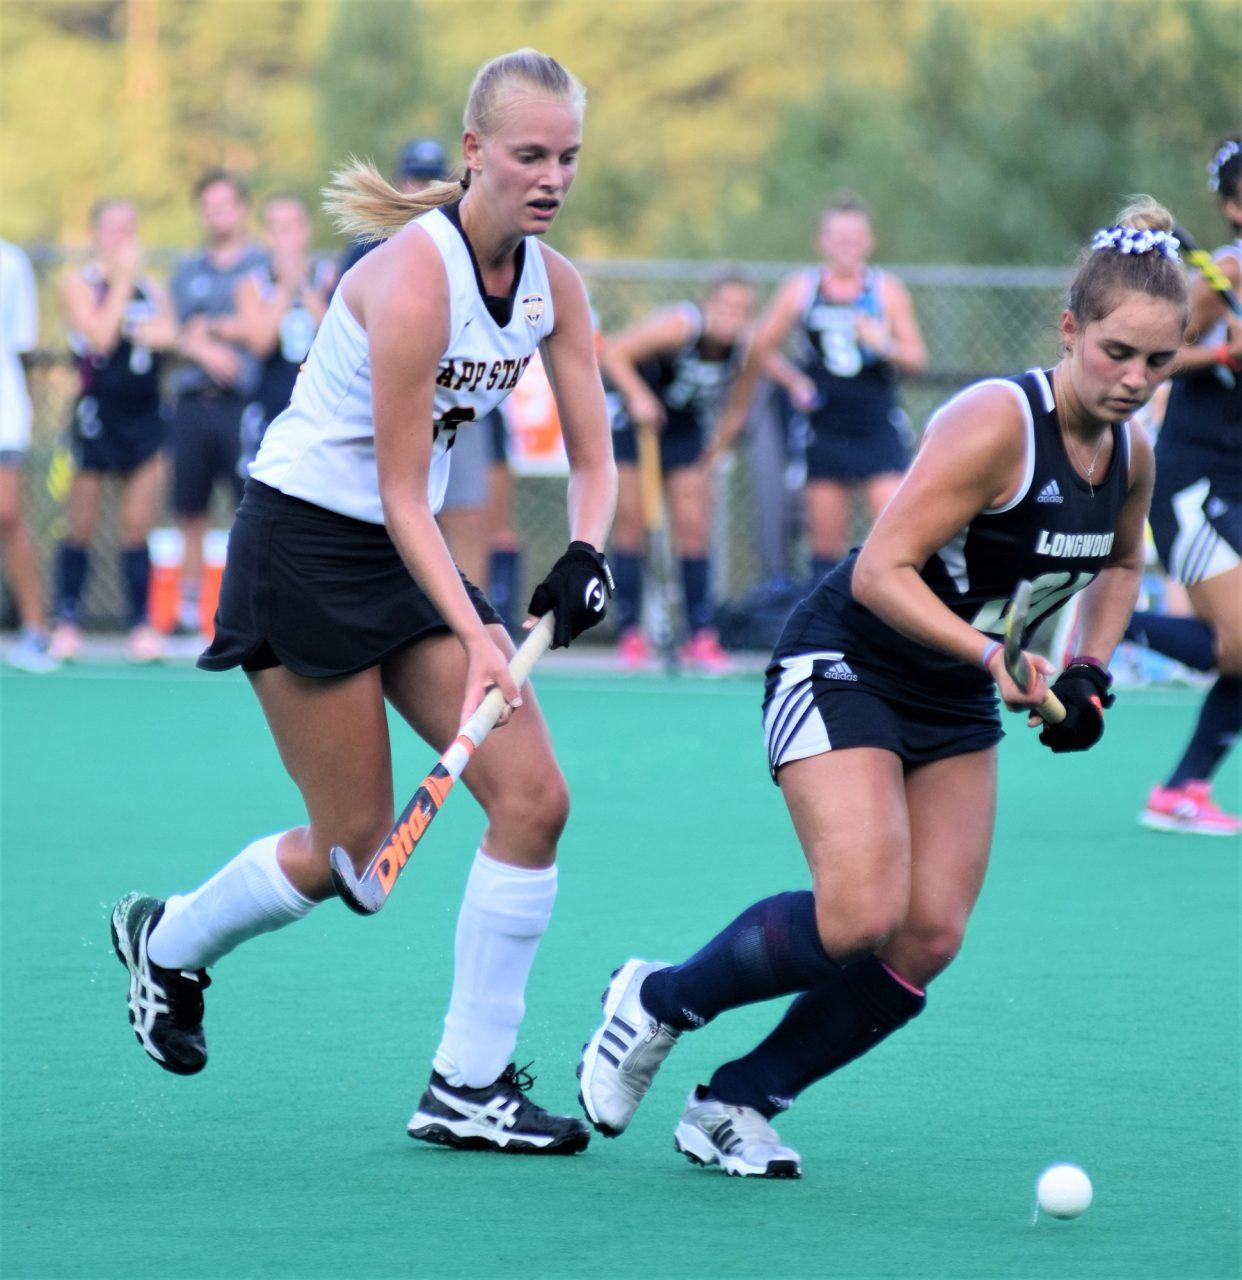 Mountaineers+field+hockey+player%2C+Veerle+Van+Heertum%2C+tries+to+stop+Longwood+from+getting+the+ball.++